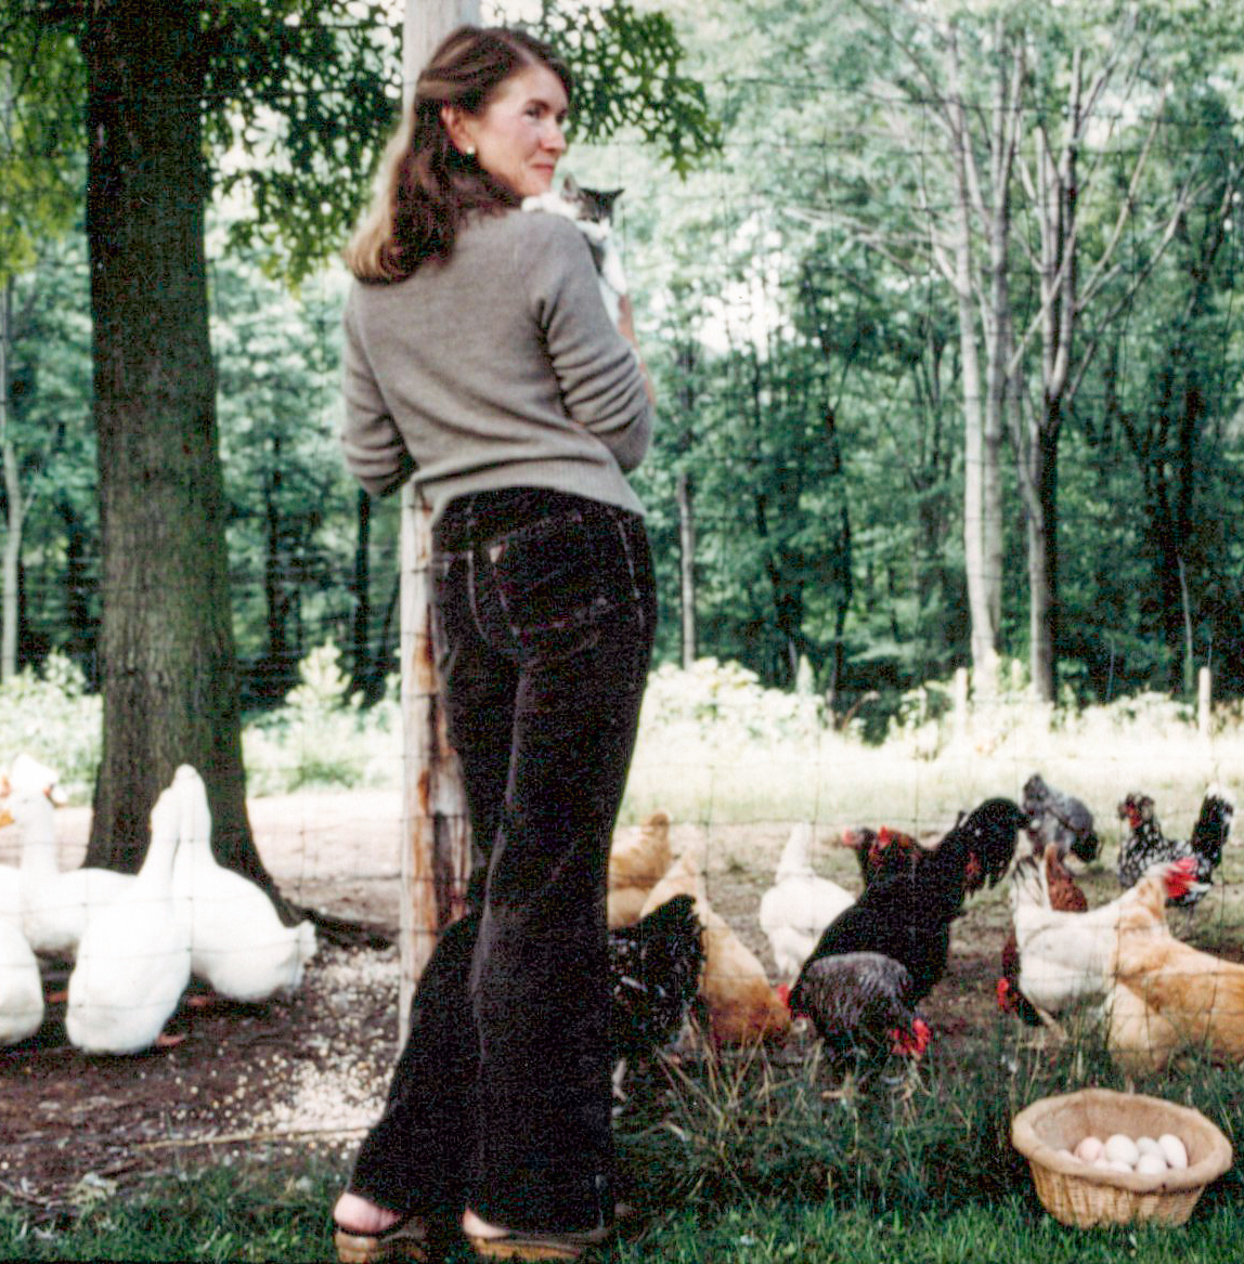 martha stewart in front of turkey hill chicken coop